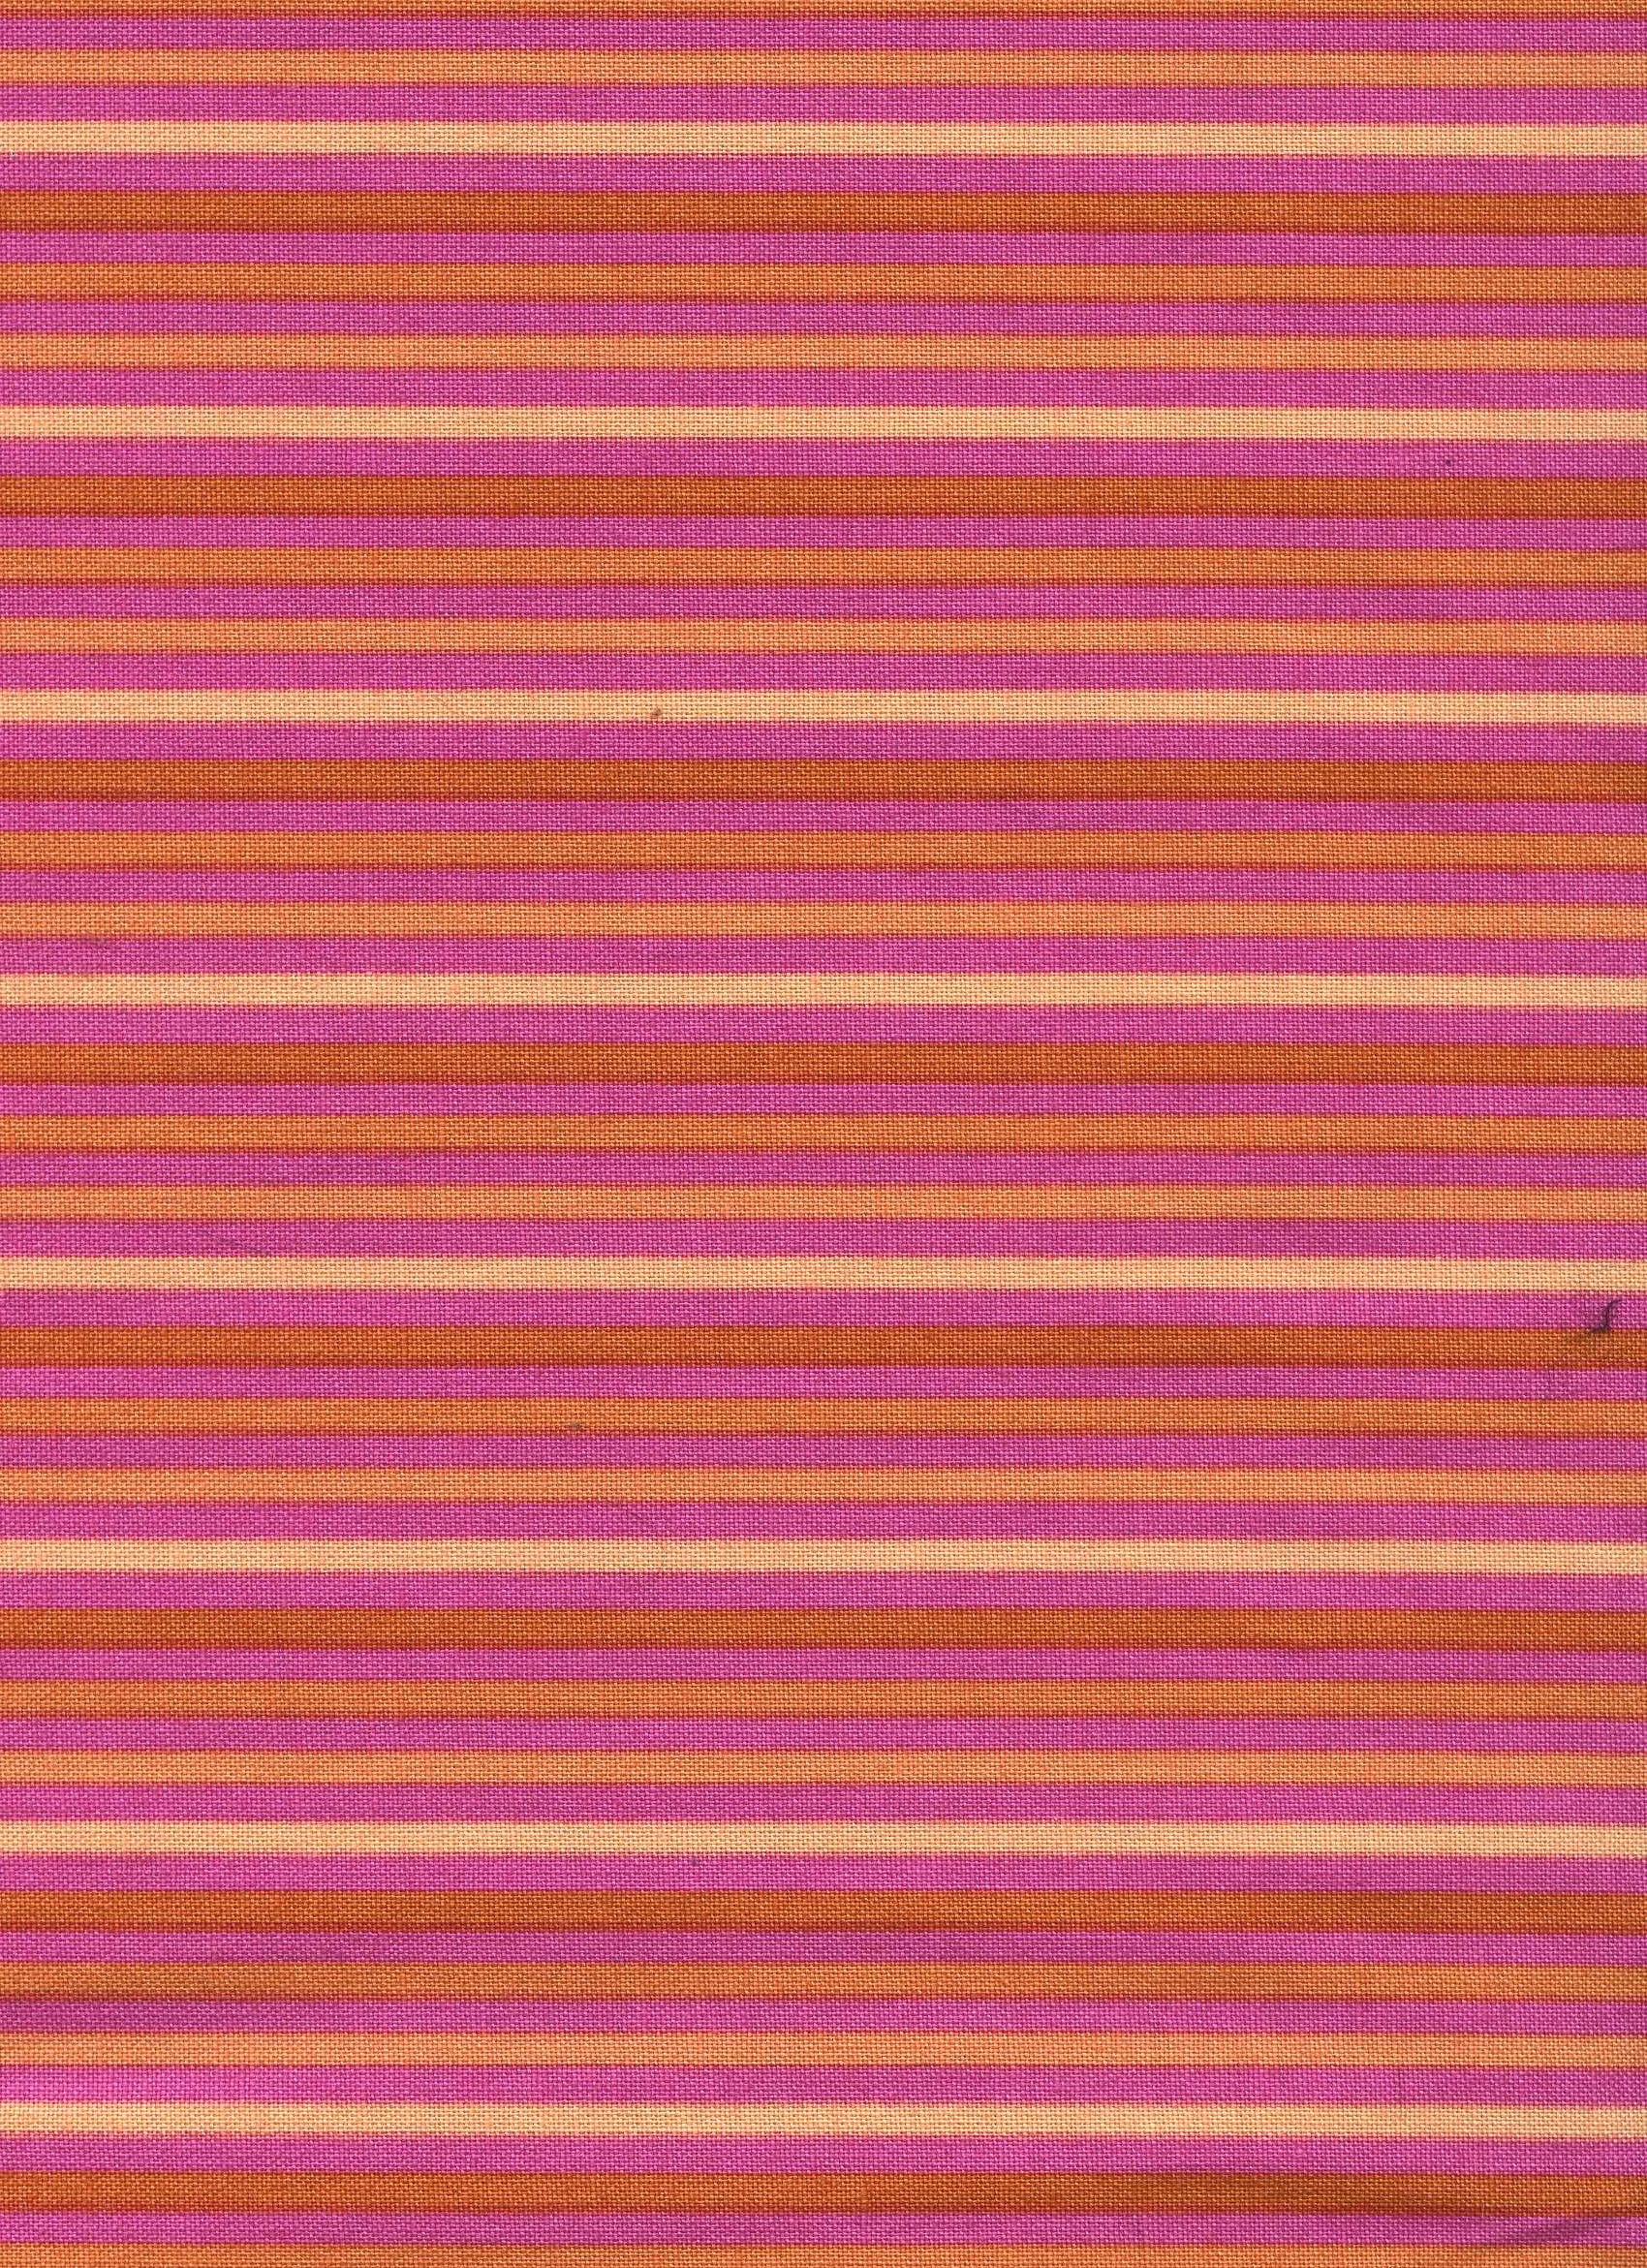 Pink and Orange Stripe